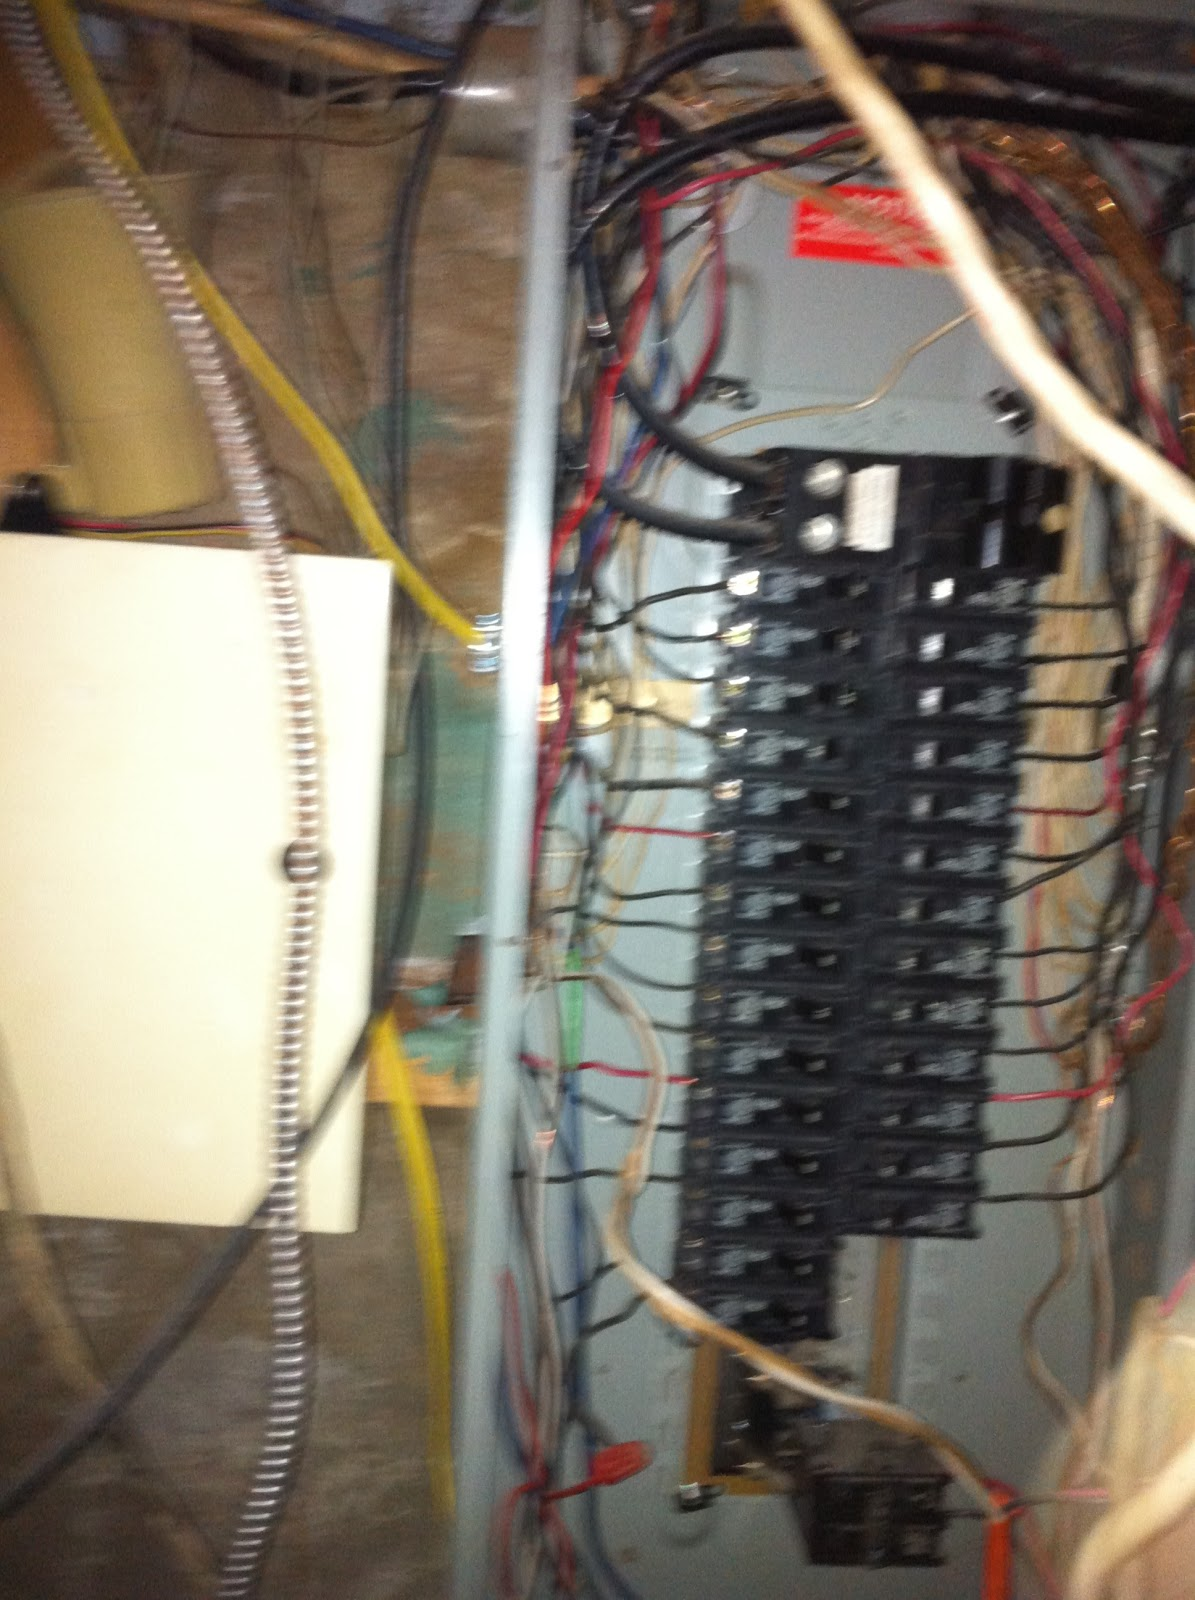 gen3 electric 215 352 5963 august 2011 rh philadelphia electricians how to com Basic Electrical Wiring Breaker Box Basic Electrical Wiring Breaker Box